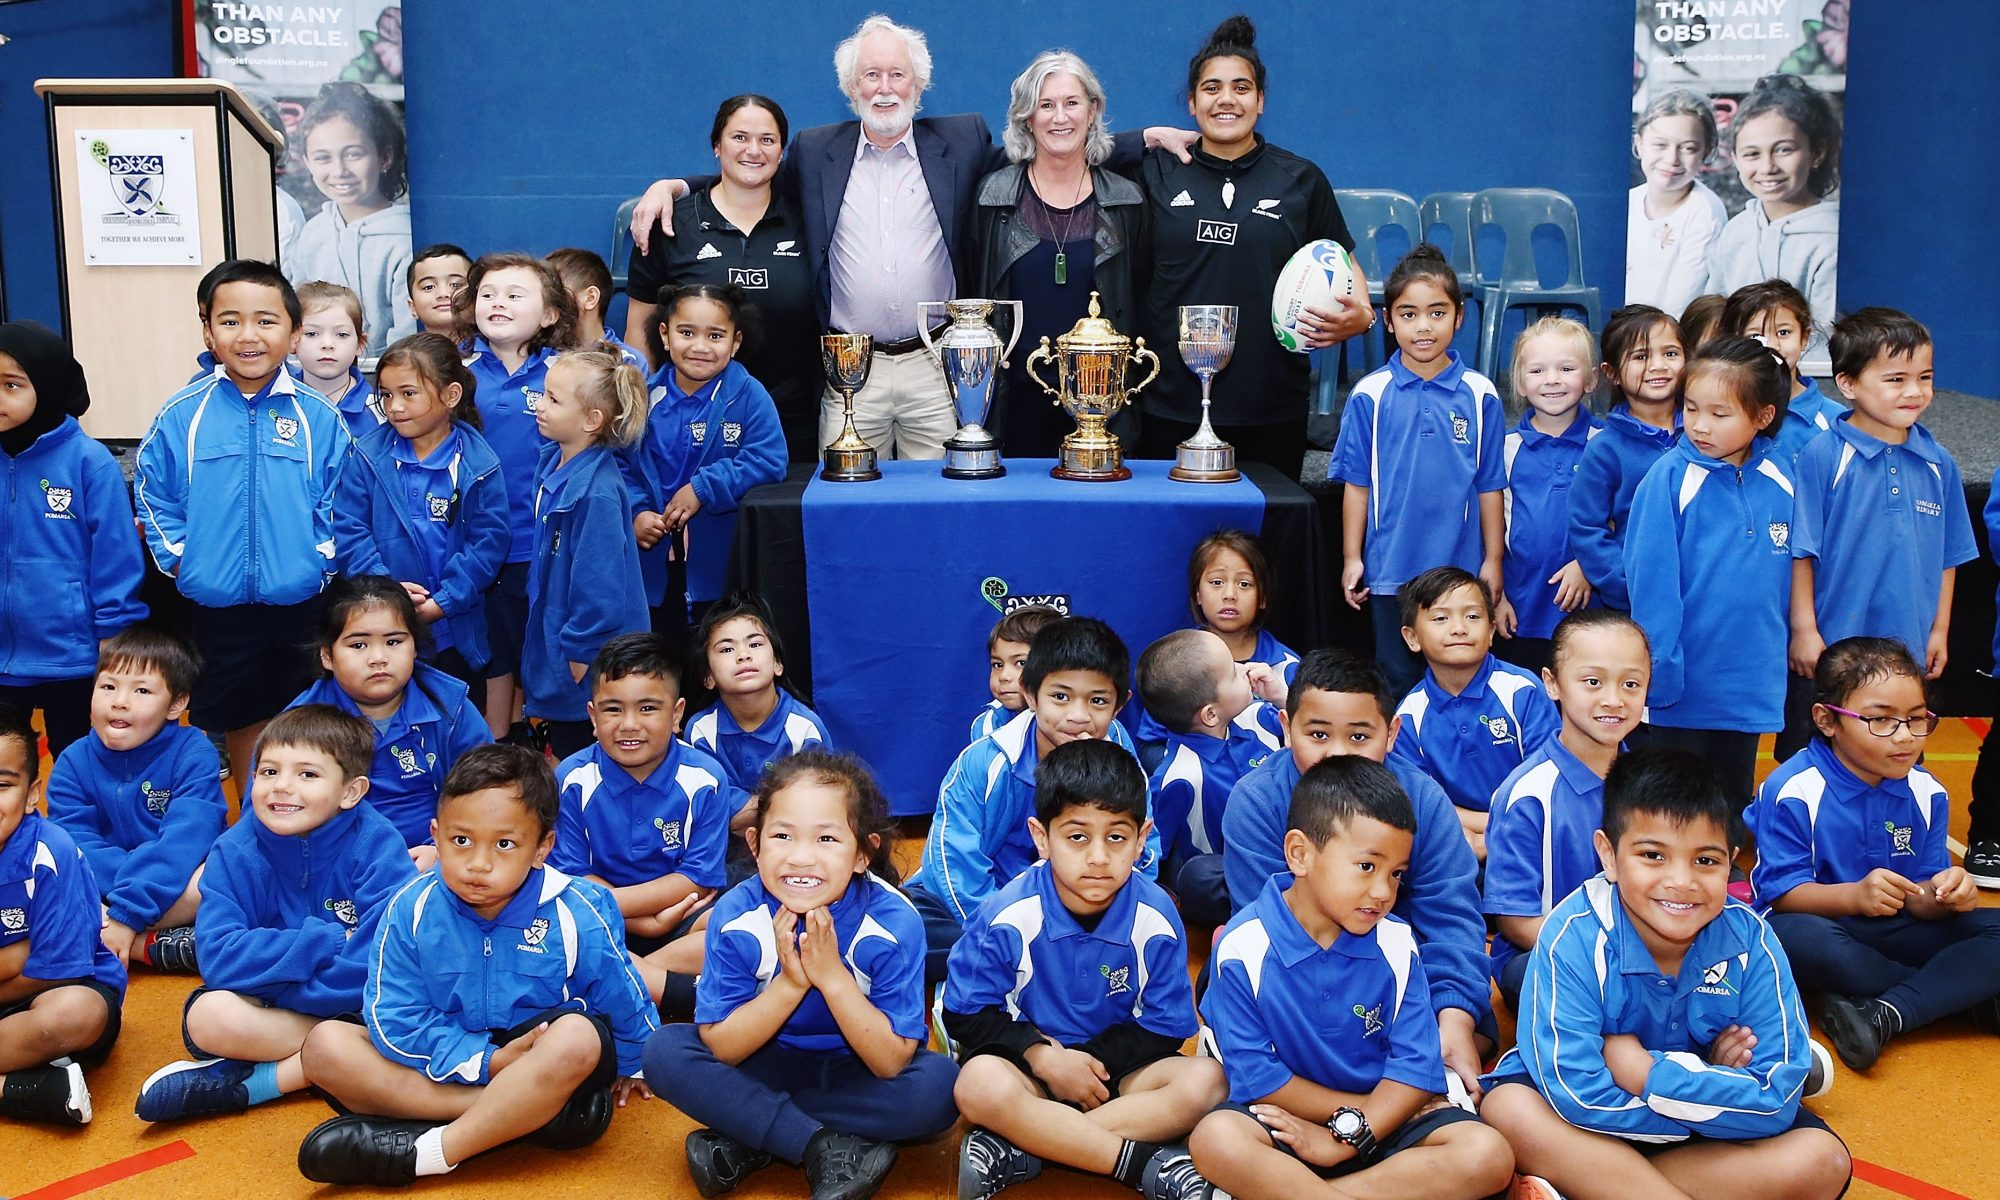 Nz Rugby Joins With Graeme Dingle Foundation To Improve Kids Lives Graeme Dingle Foundation